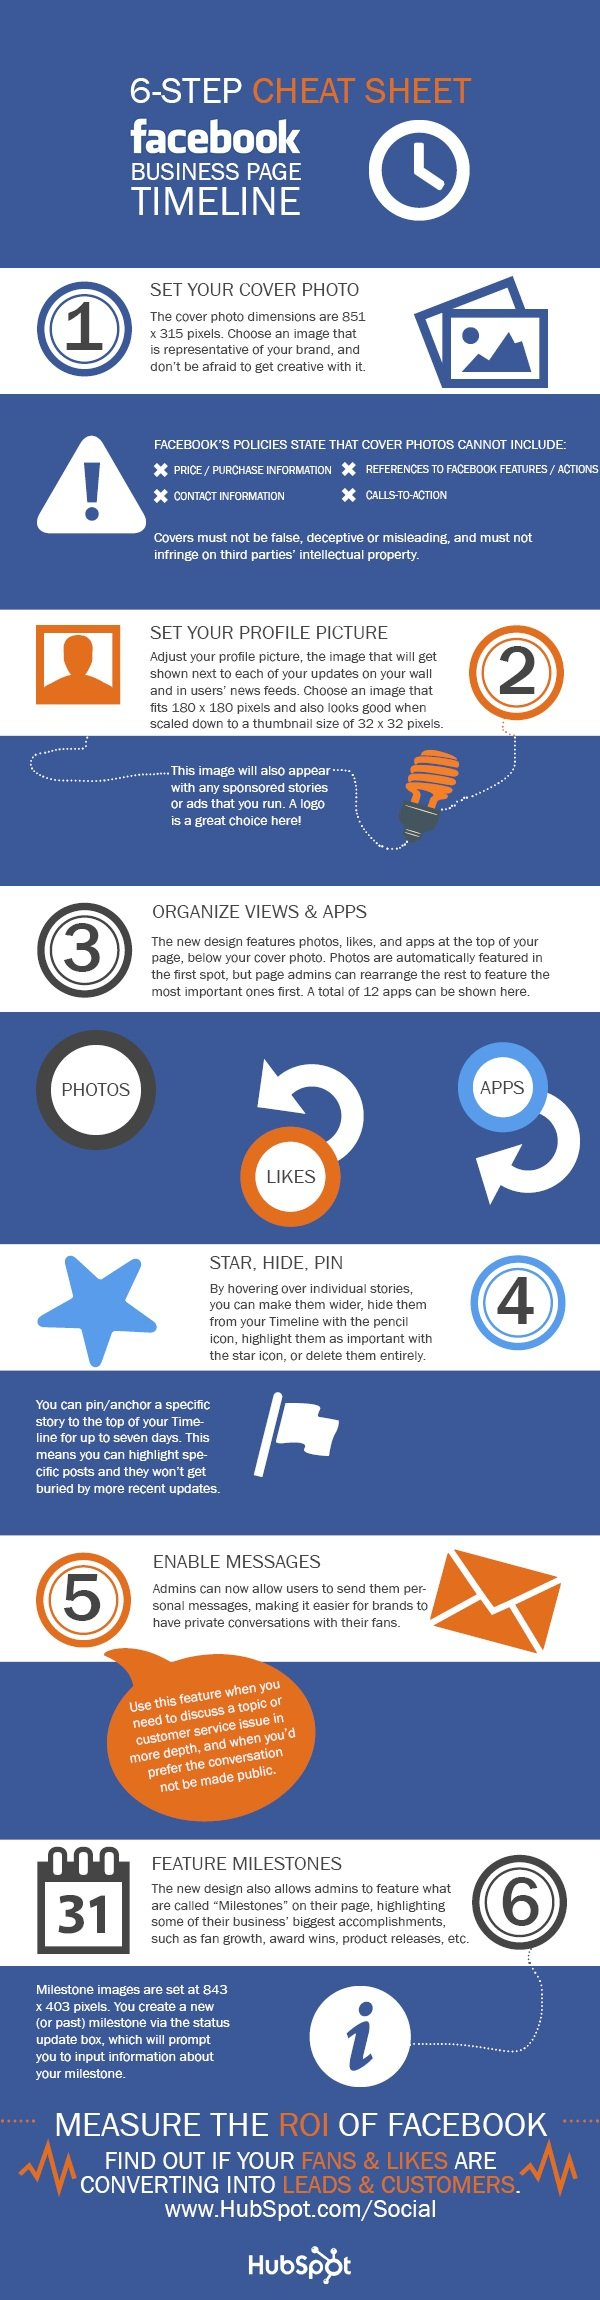 Facebook Page Timeline Design Cheat Sheet